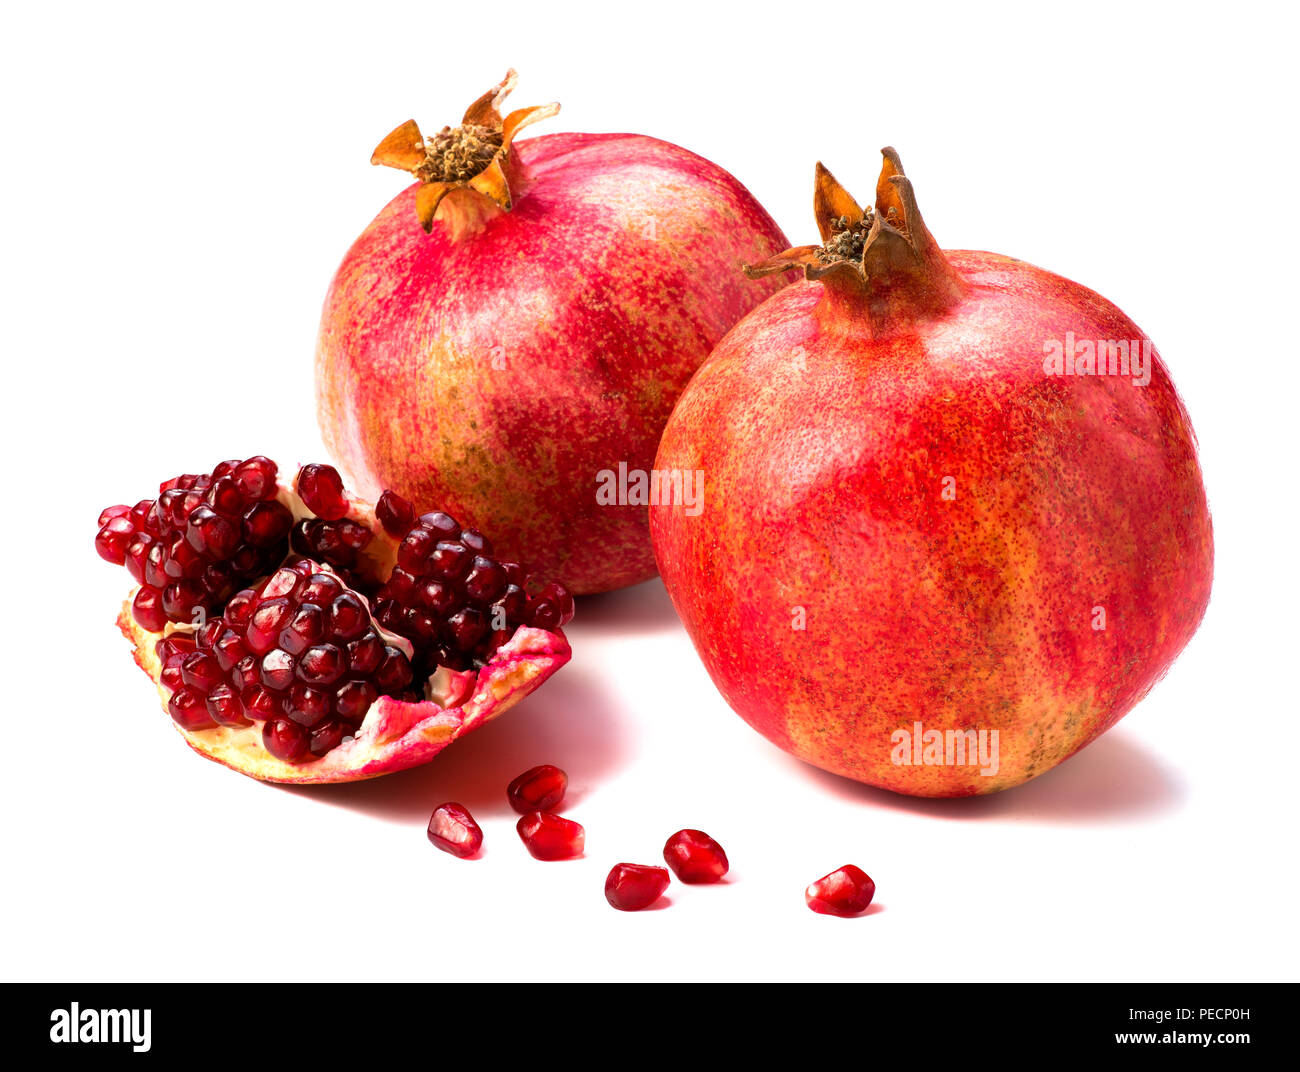 Pomegranate fruit isolated on white background. Slice. - Stock Image